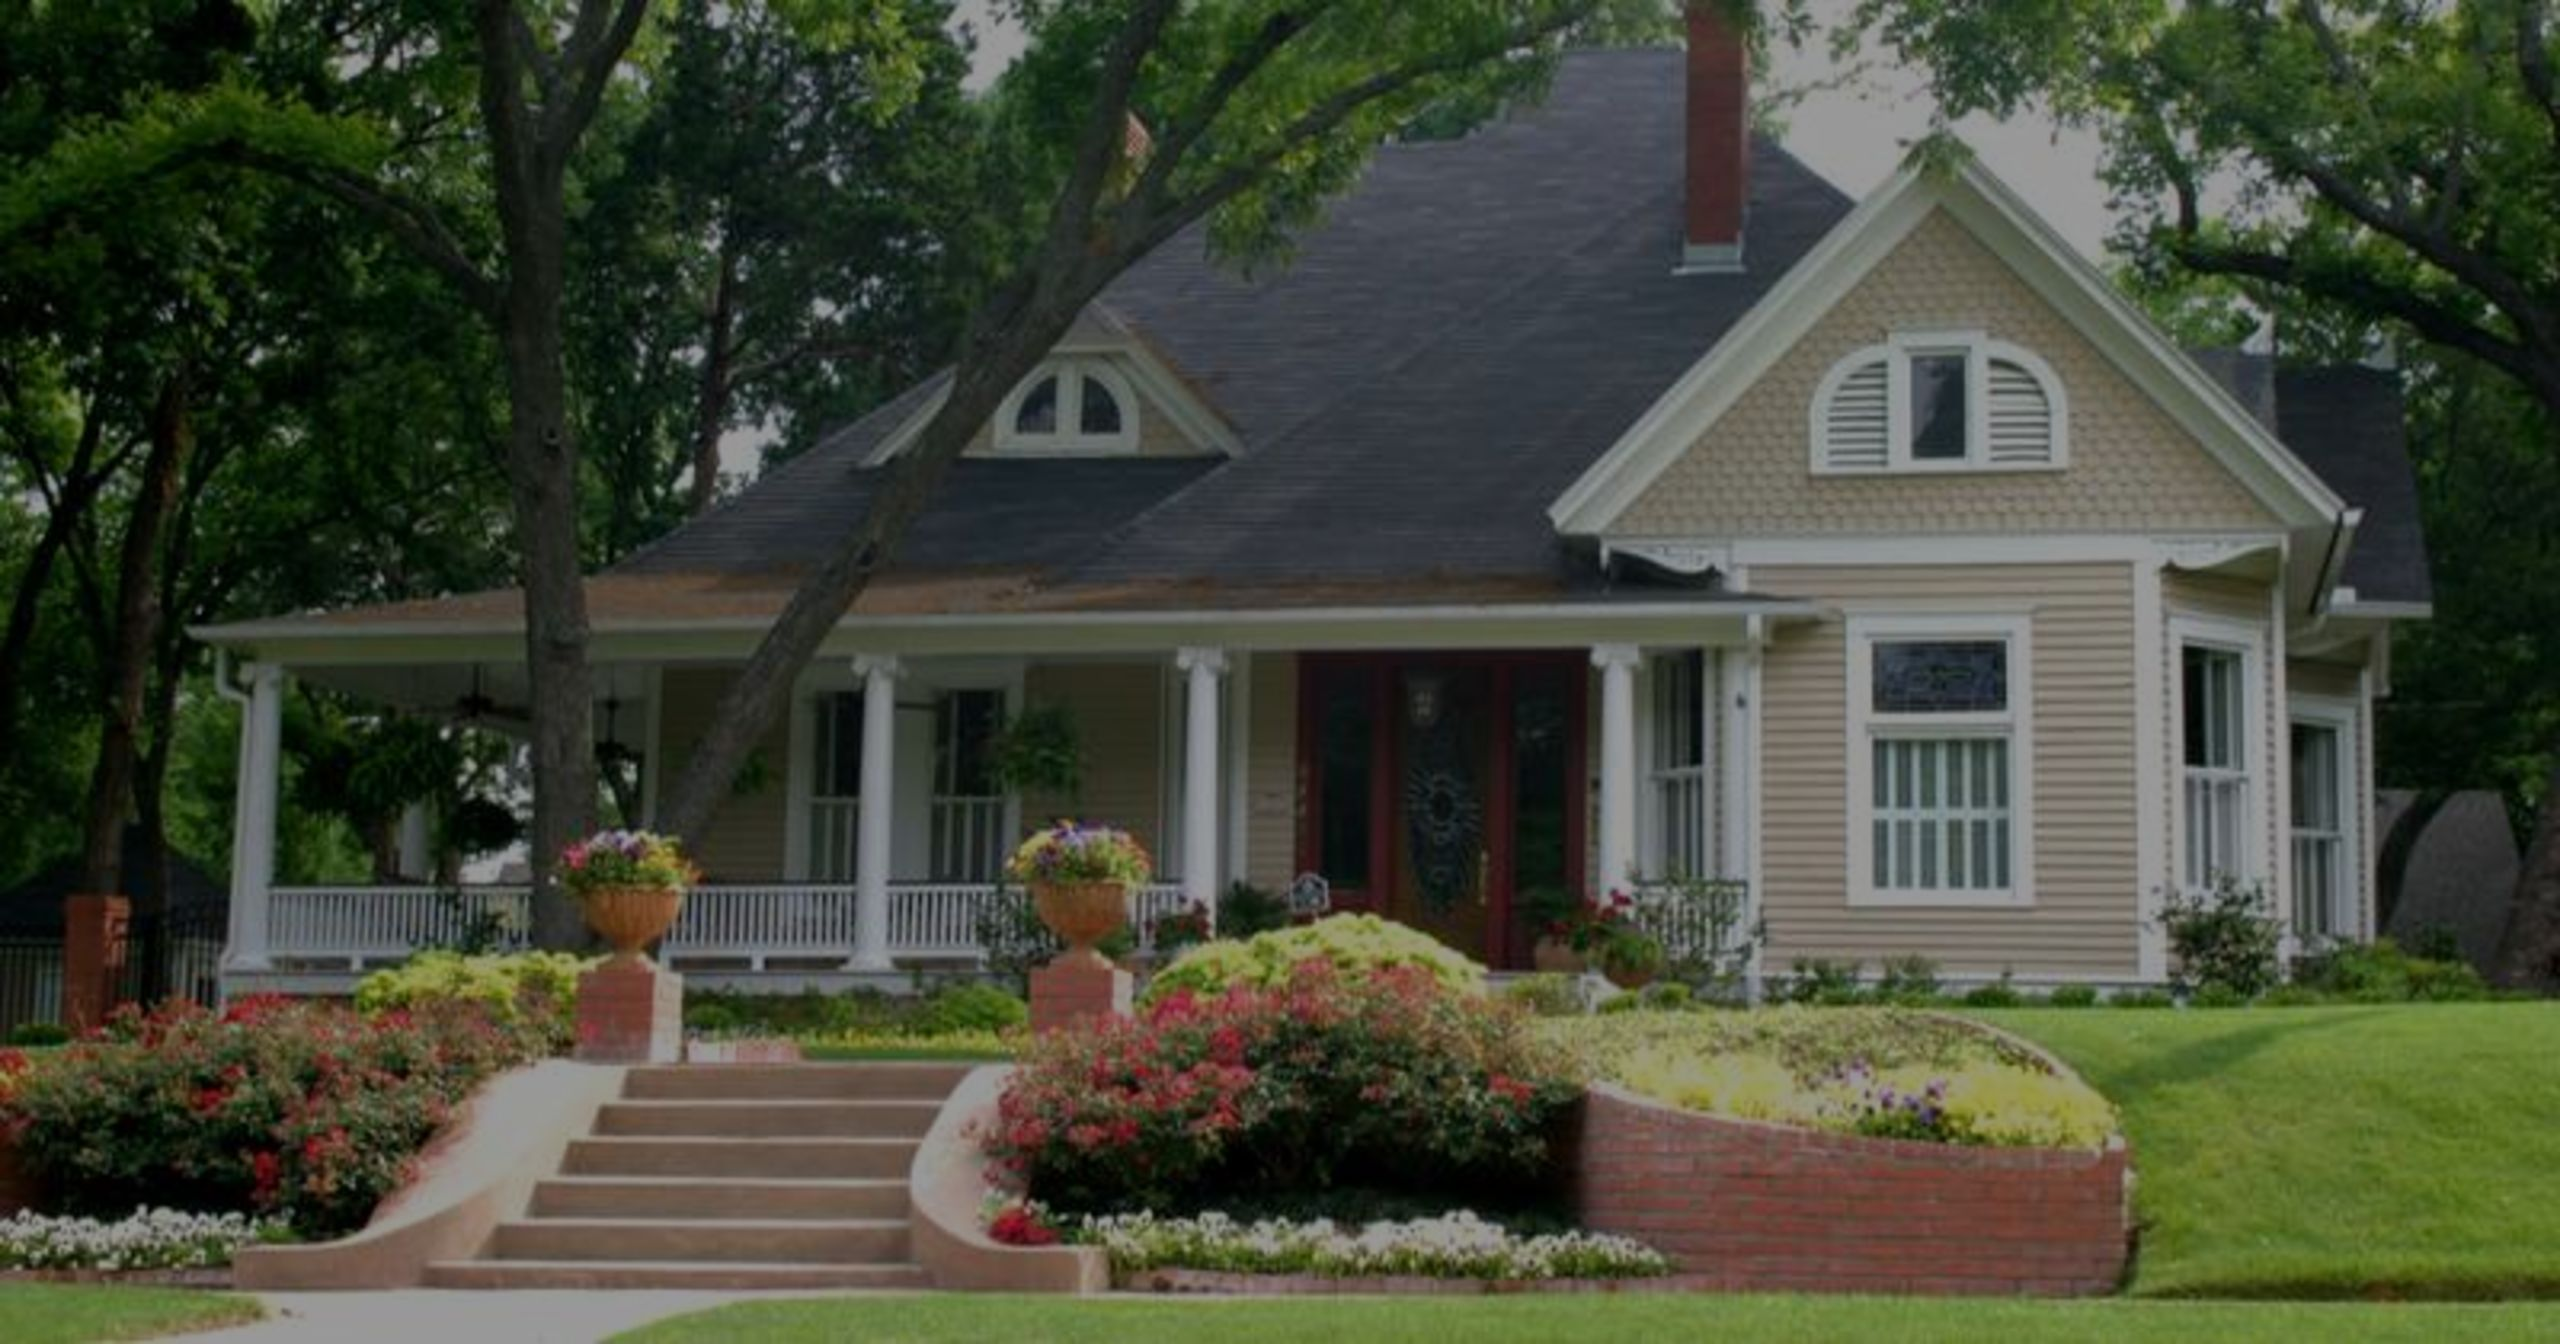 HOW TO UP YOUR CURB APPEAL